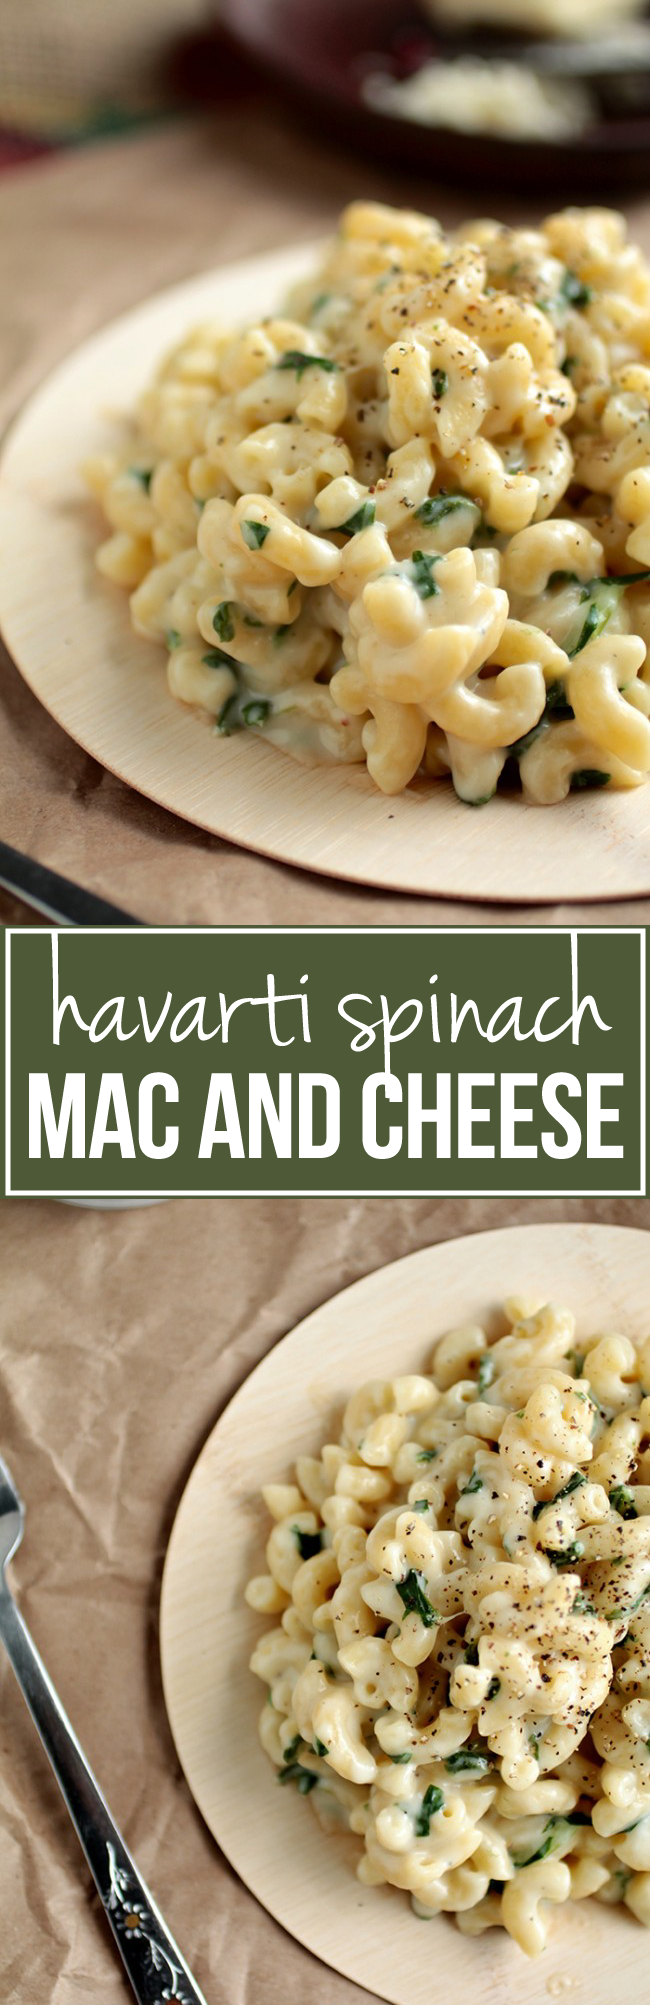 Havarti Spinach Mac and Cheese | Mix up your macaroni and cheese routine with this simple havarti mac and cheese recipe - the perfect easy weeknight meal that even the pickiest eaters will love! Vegetarian.